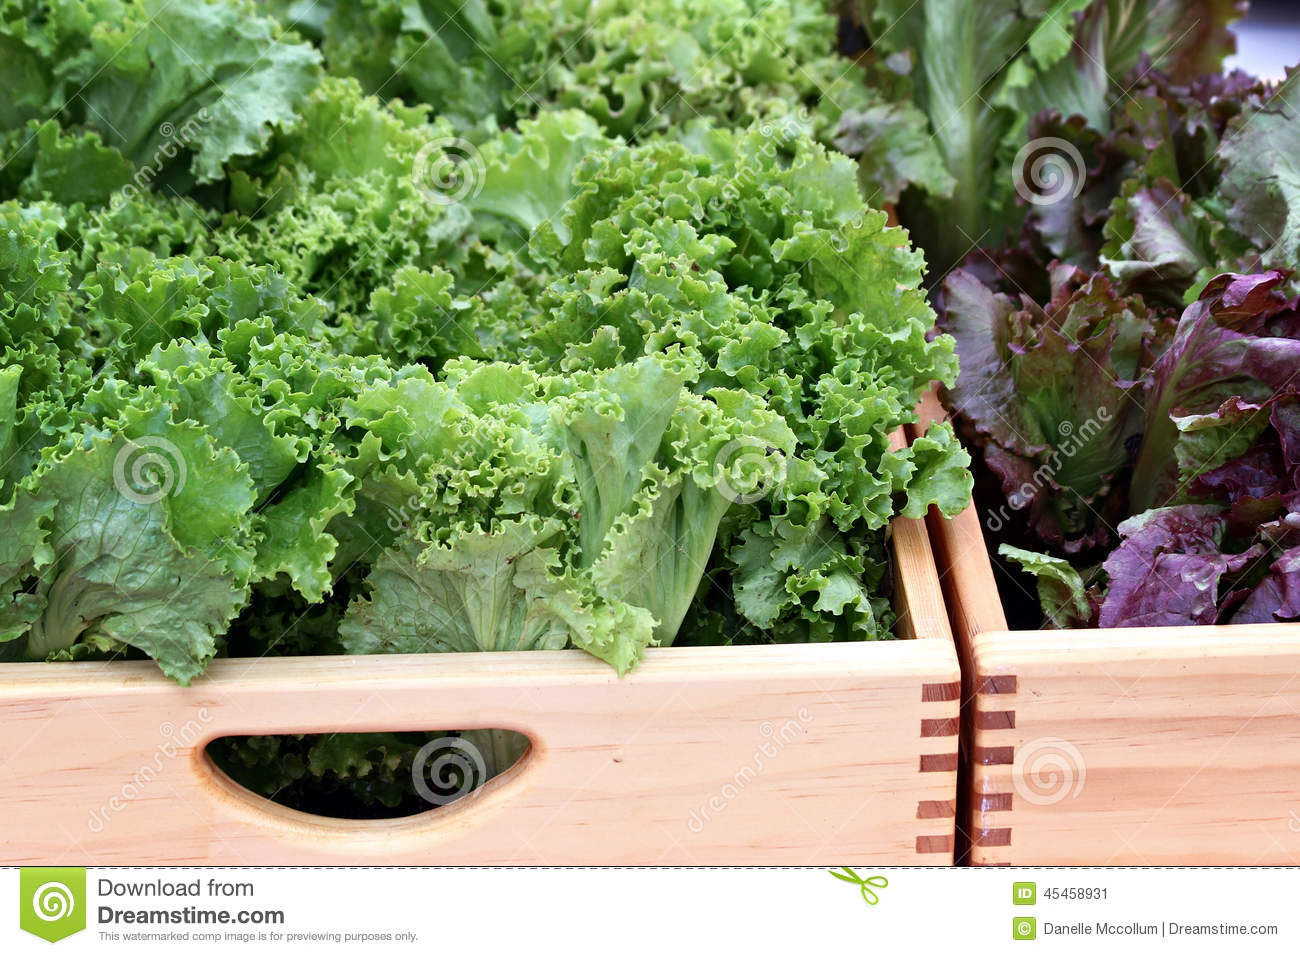 Boxes of Lettuce